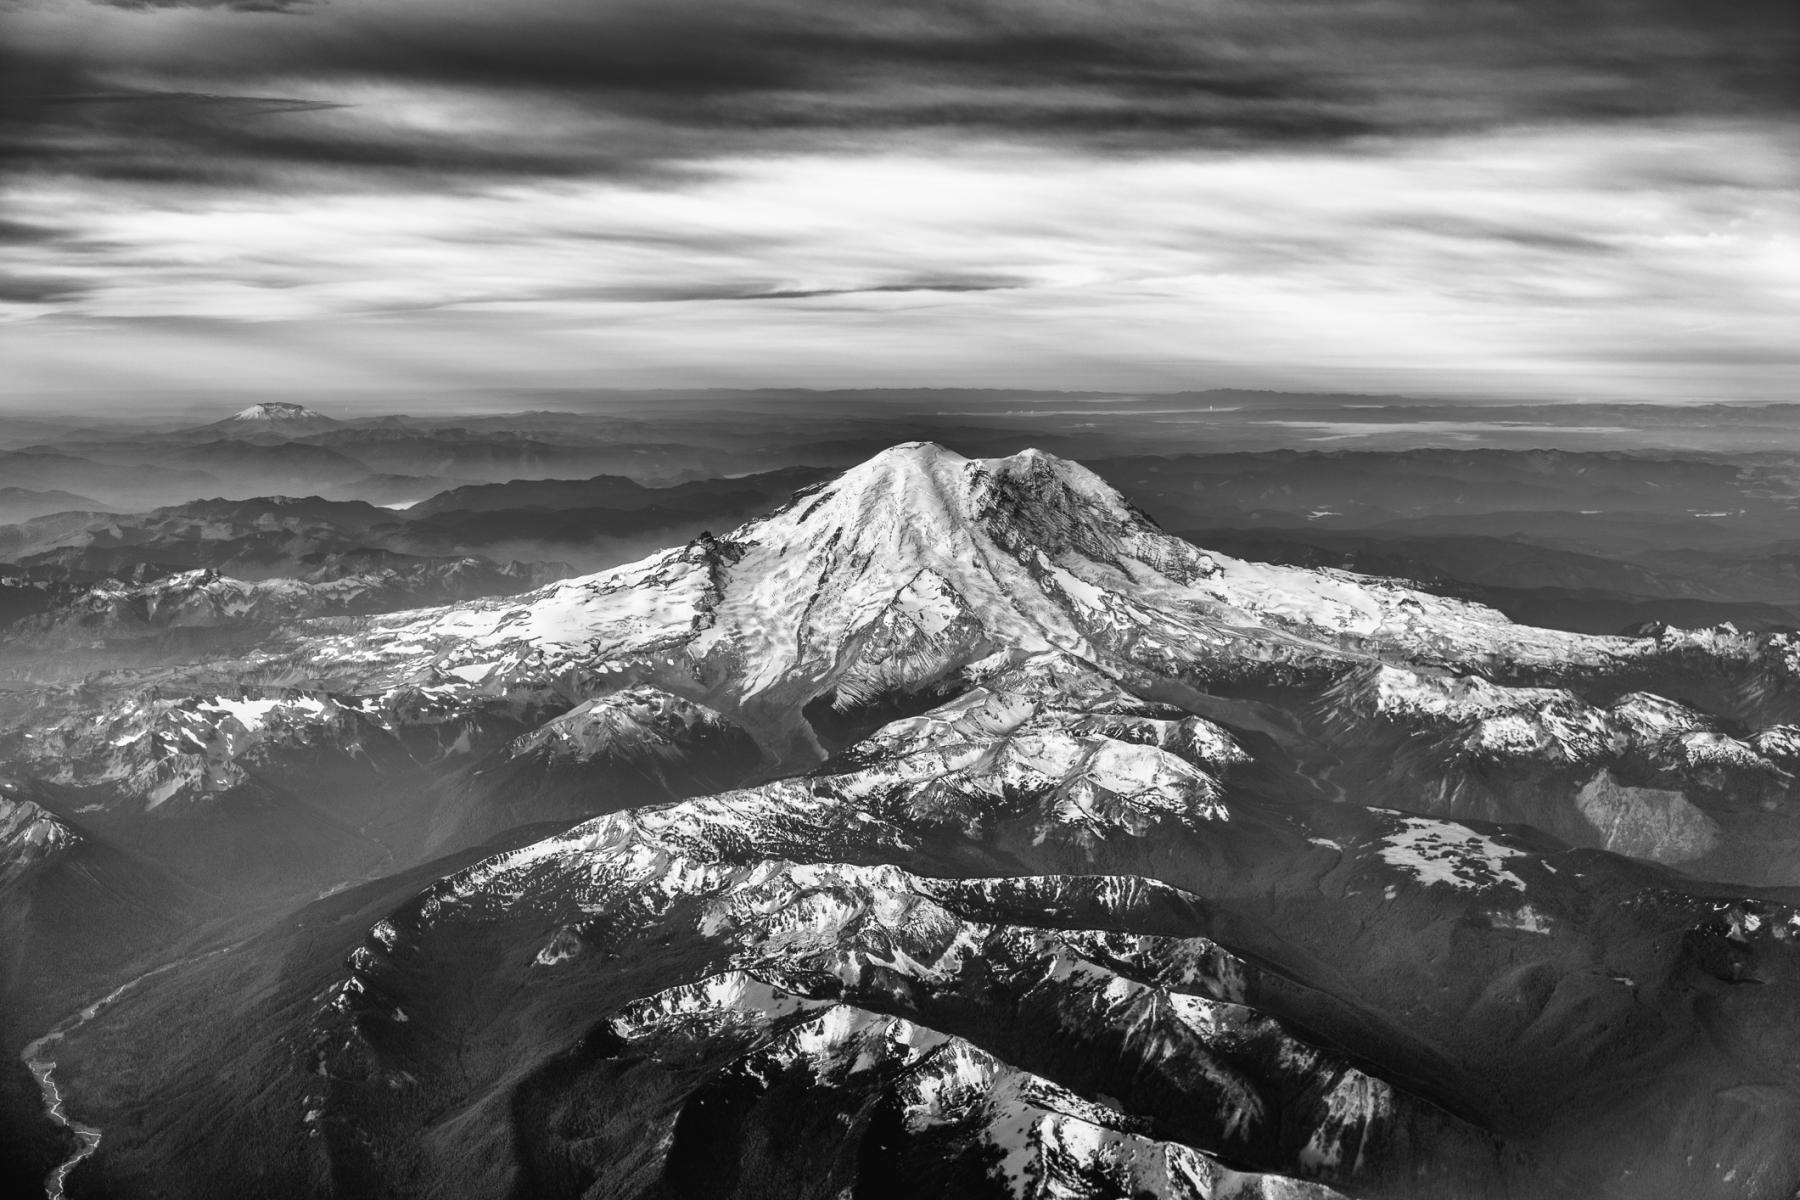 Mt. Ranier, Washington : monochrom : TIMOTHY FLOYD PHOTOGRAPHER, NATURE PHOTOGRAPHY, PHOTO ESSAYS, PHOTOJOURNALISM